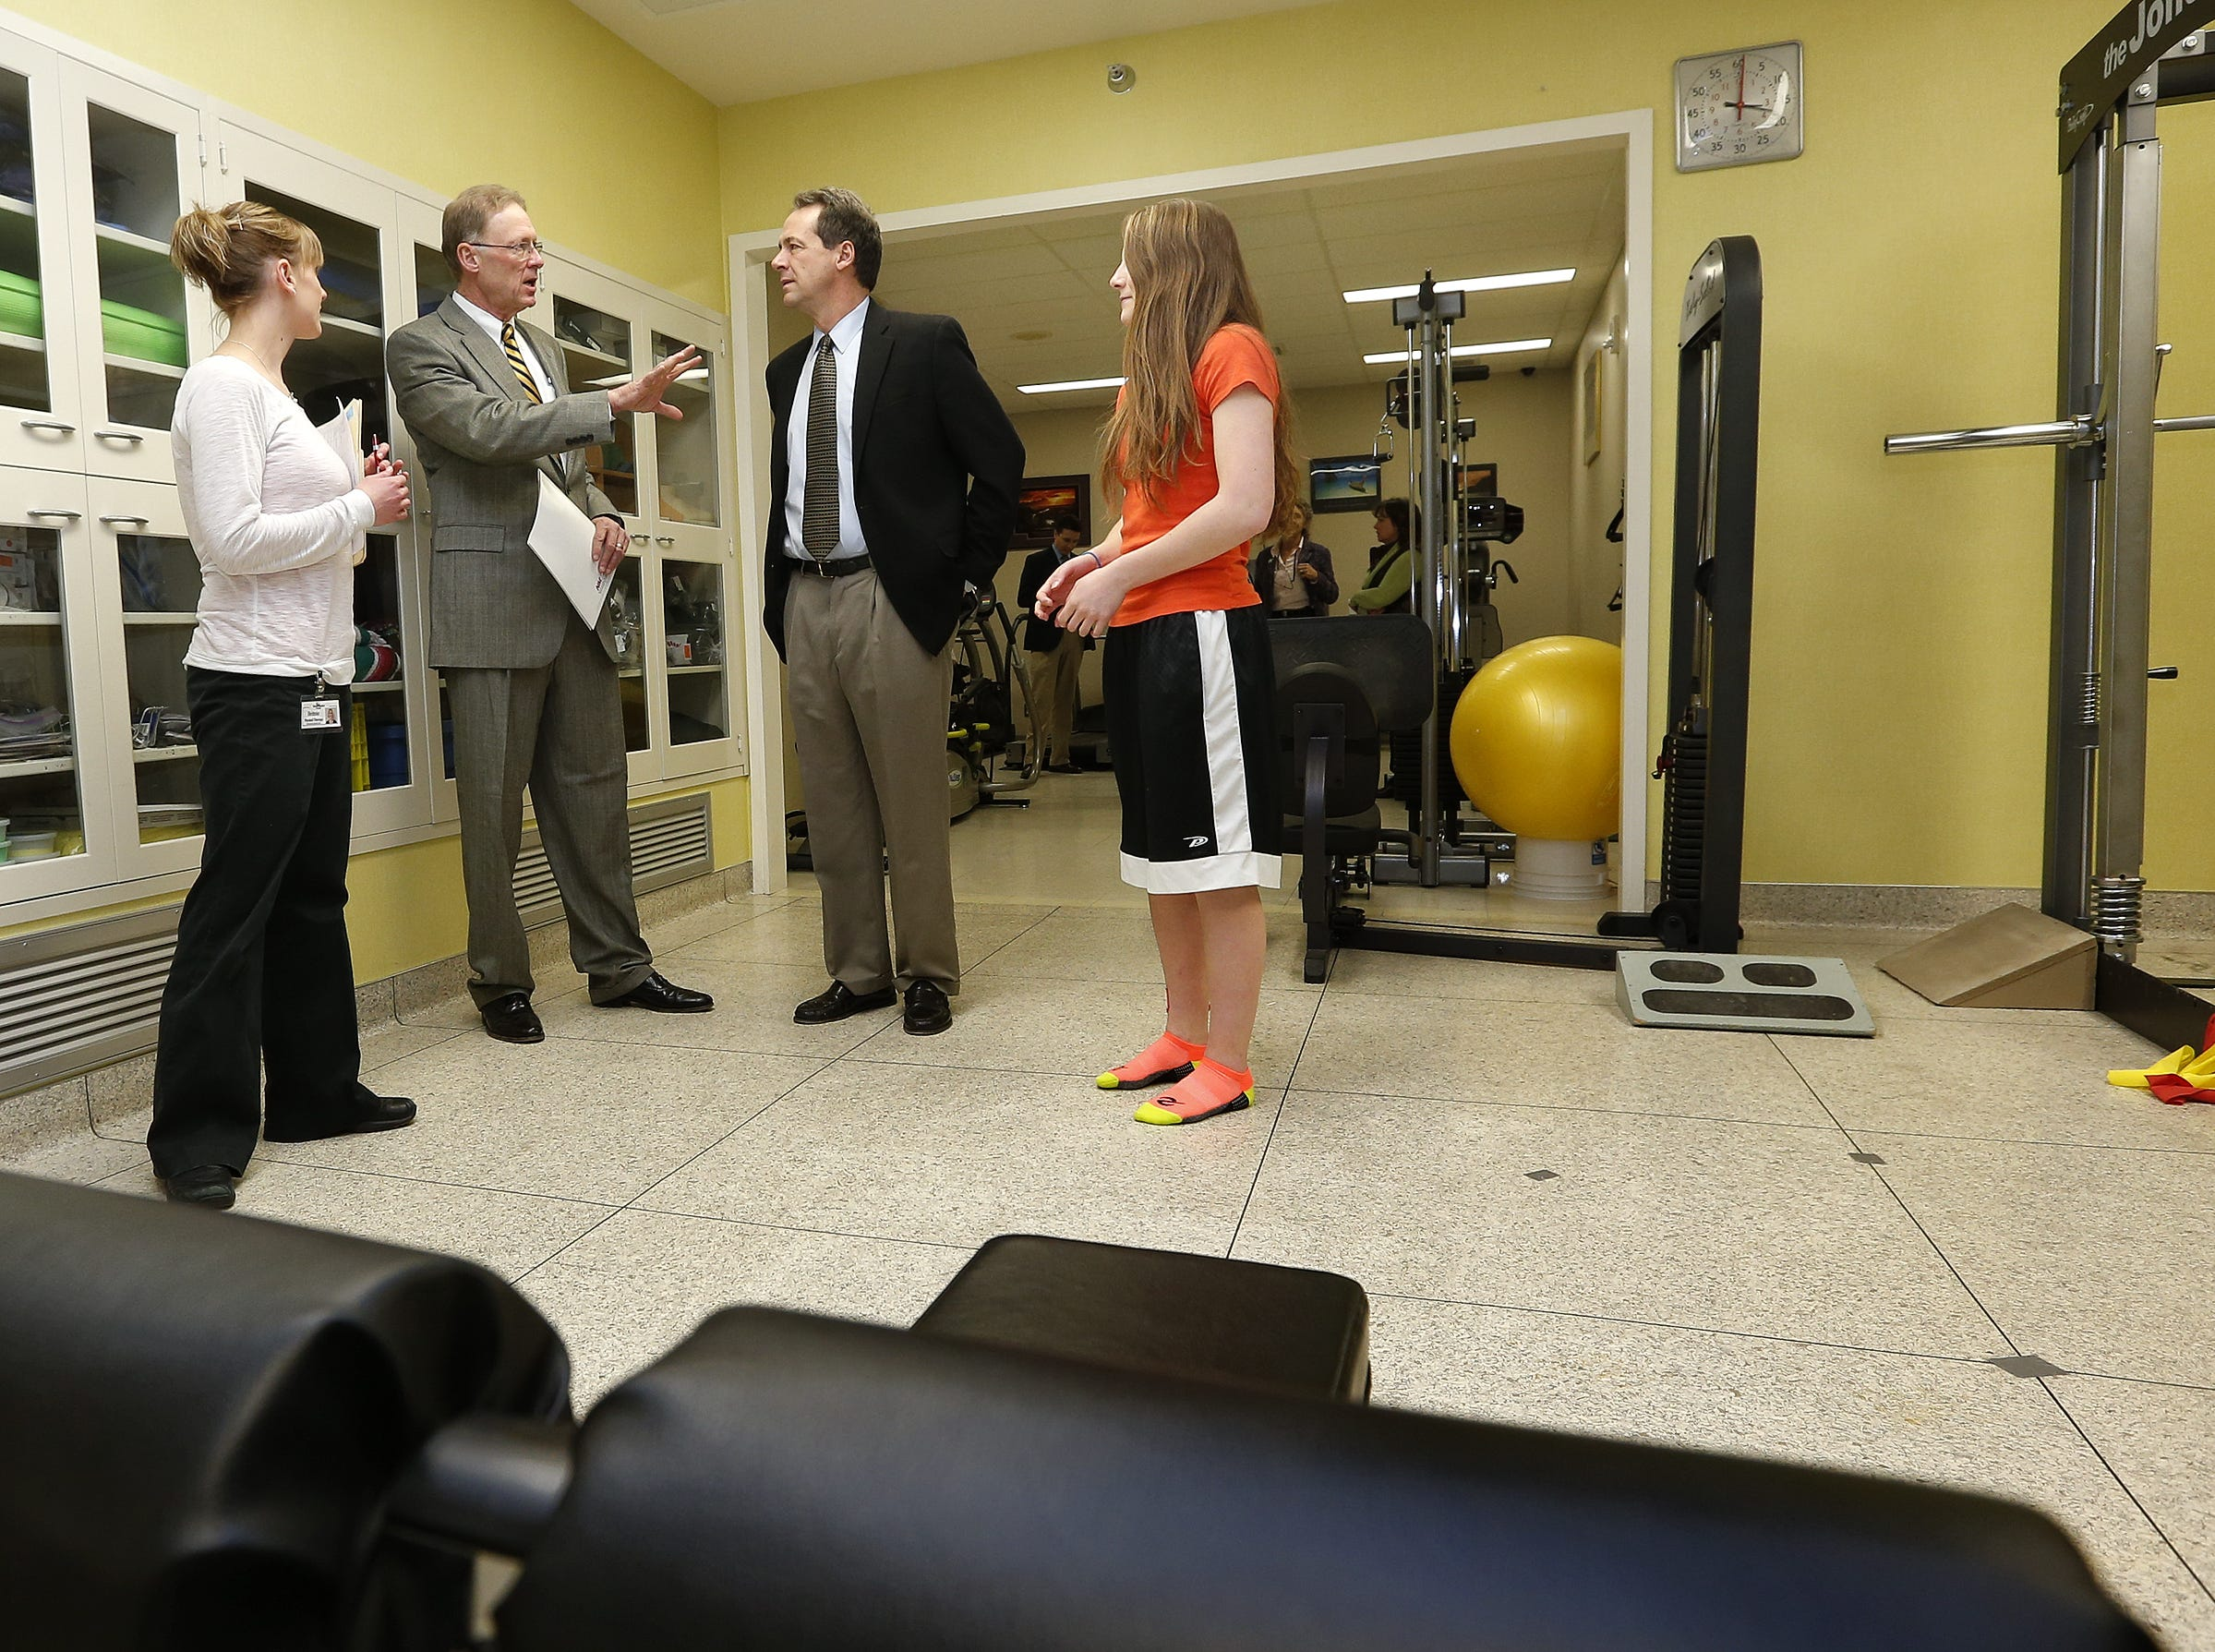 TRIBUNE PHOTO/LARRY BECKNER Louie King, CEO of Teton Medical Center, second from left, gives Gov. Steve Bullock a tour of the physical therapy department at the hospital in Choteau on Thursday, as Brittnie Herbst, left, and Katie Kostelnik look on. Louie King, CEO of Teton Medical Center, second from left, gives Gov. Steve Bullock a tour of the physical therapy department at the hospital in Choteau Thursday, as Brittnie Herbst, left, and Katie Kostelnik look on.